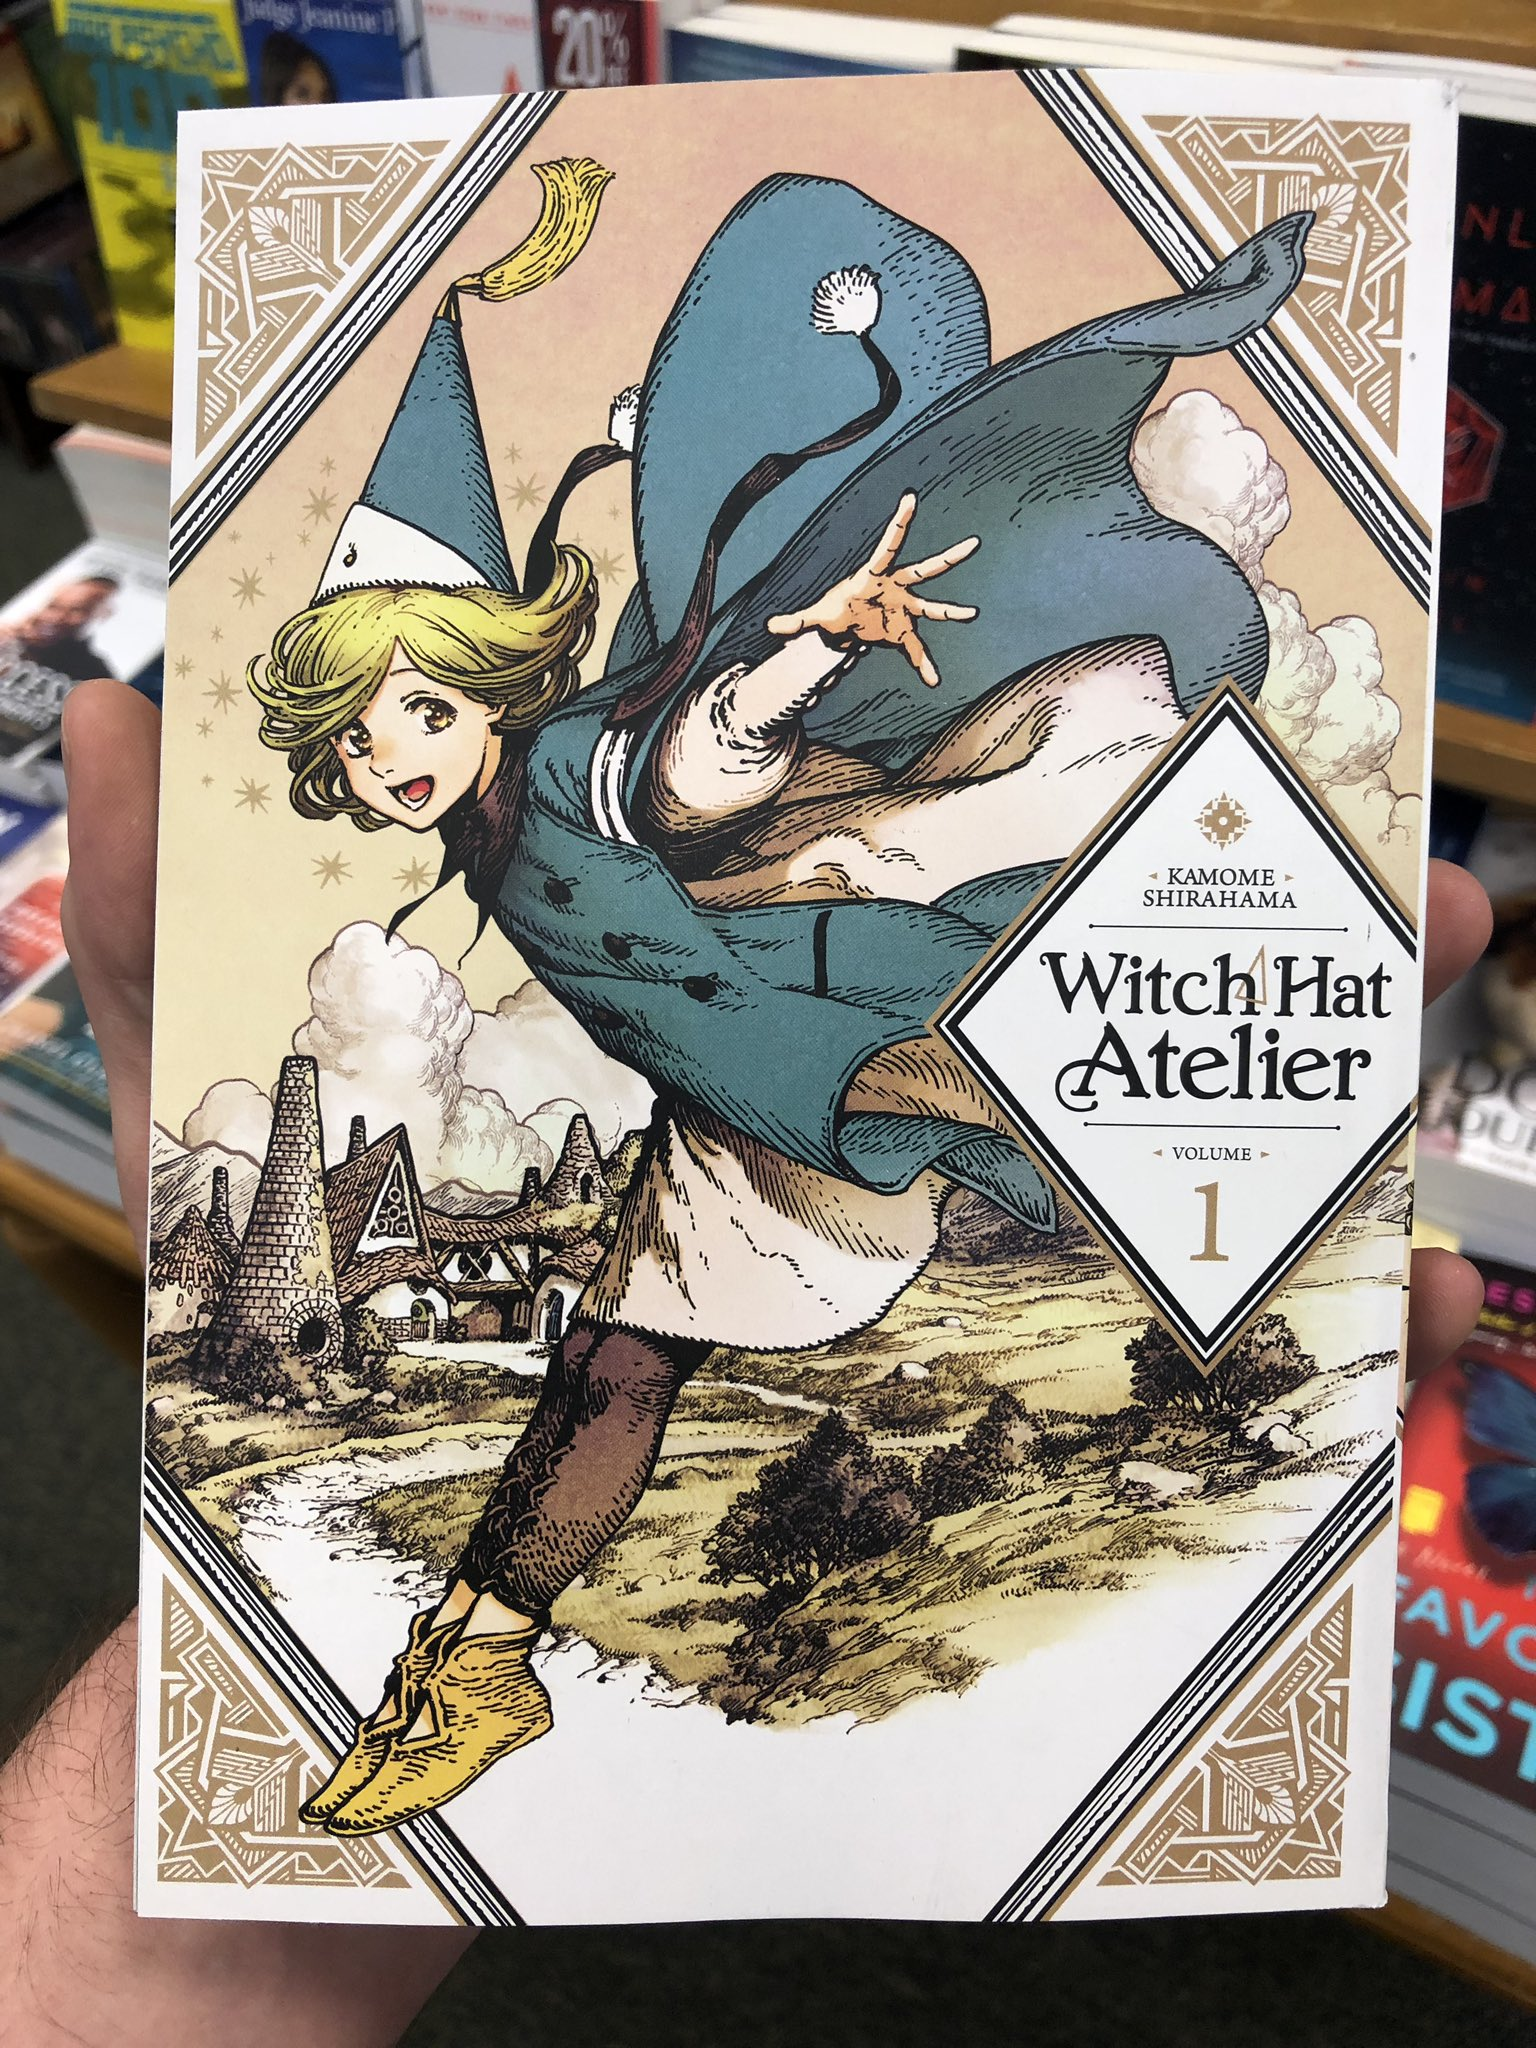 Minovsky On Twitter Witch Hat Atelier By Kamome Shirahama The Picture Book About Magic You Ve Been Looking For